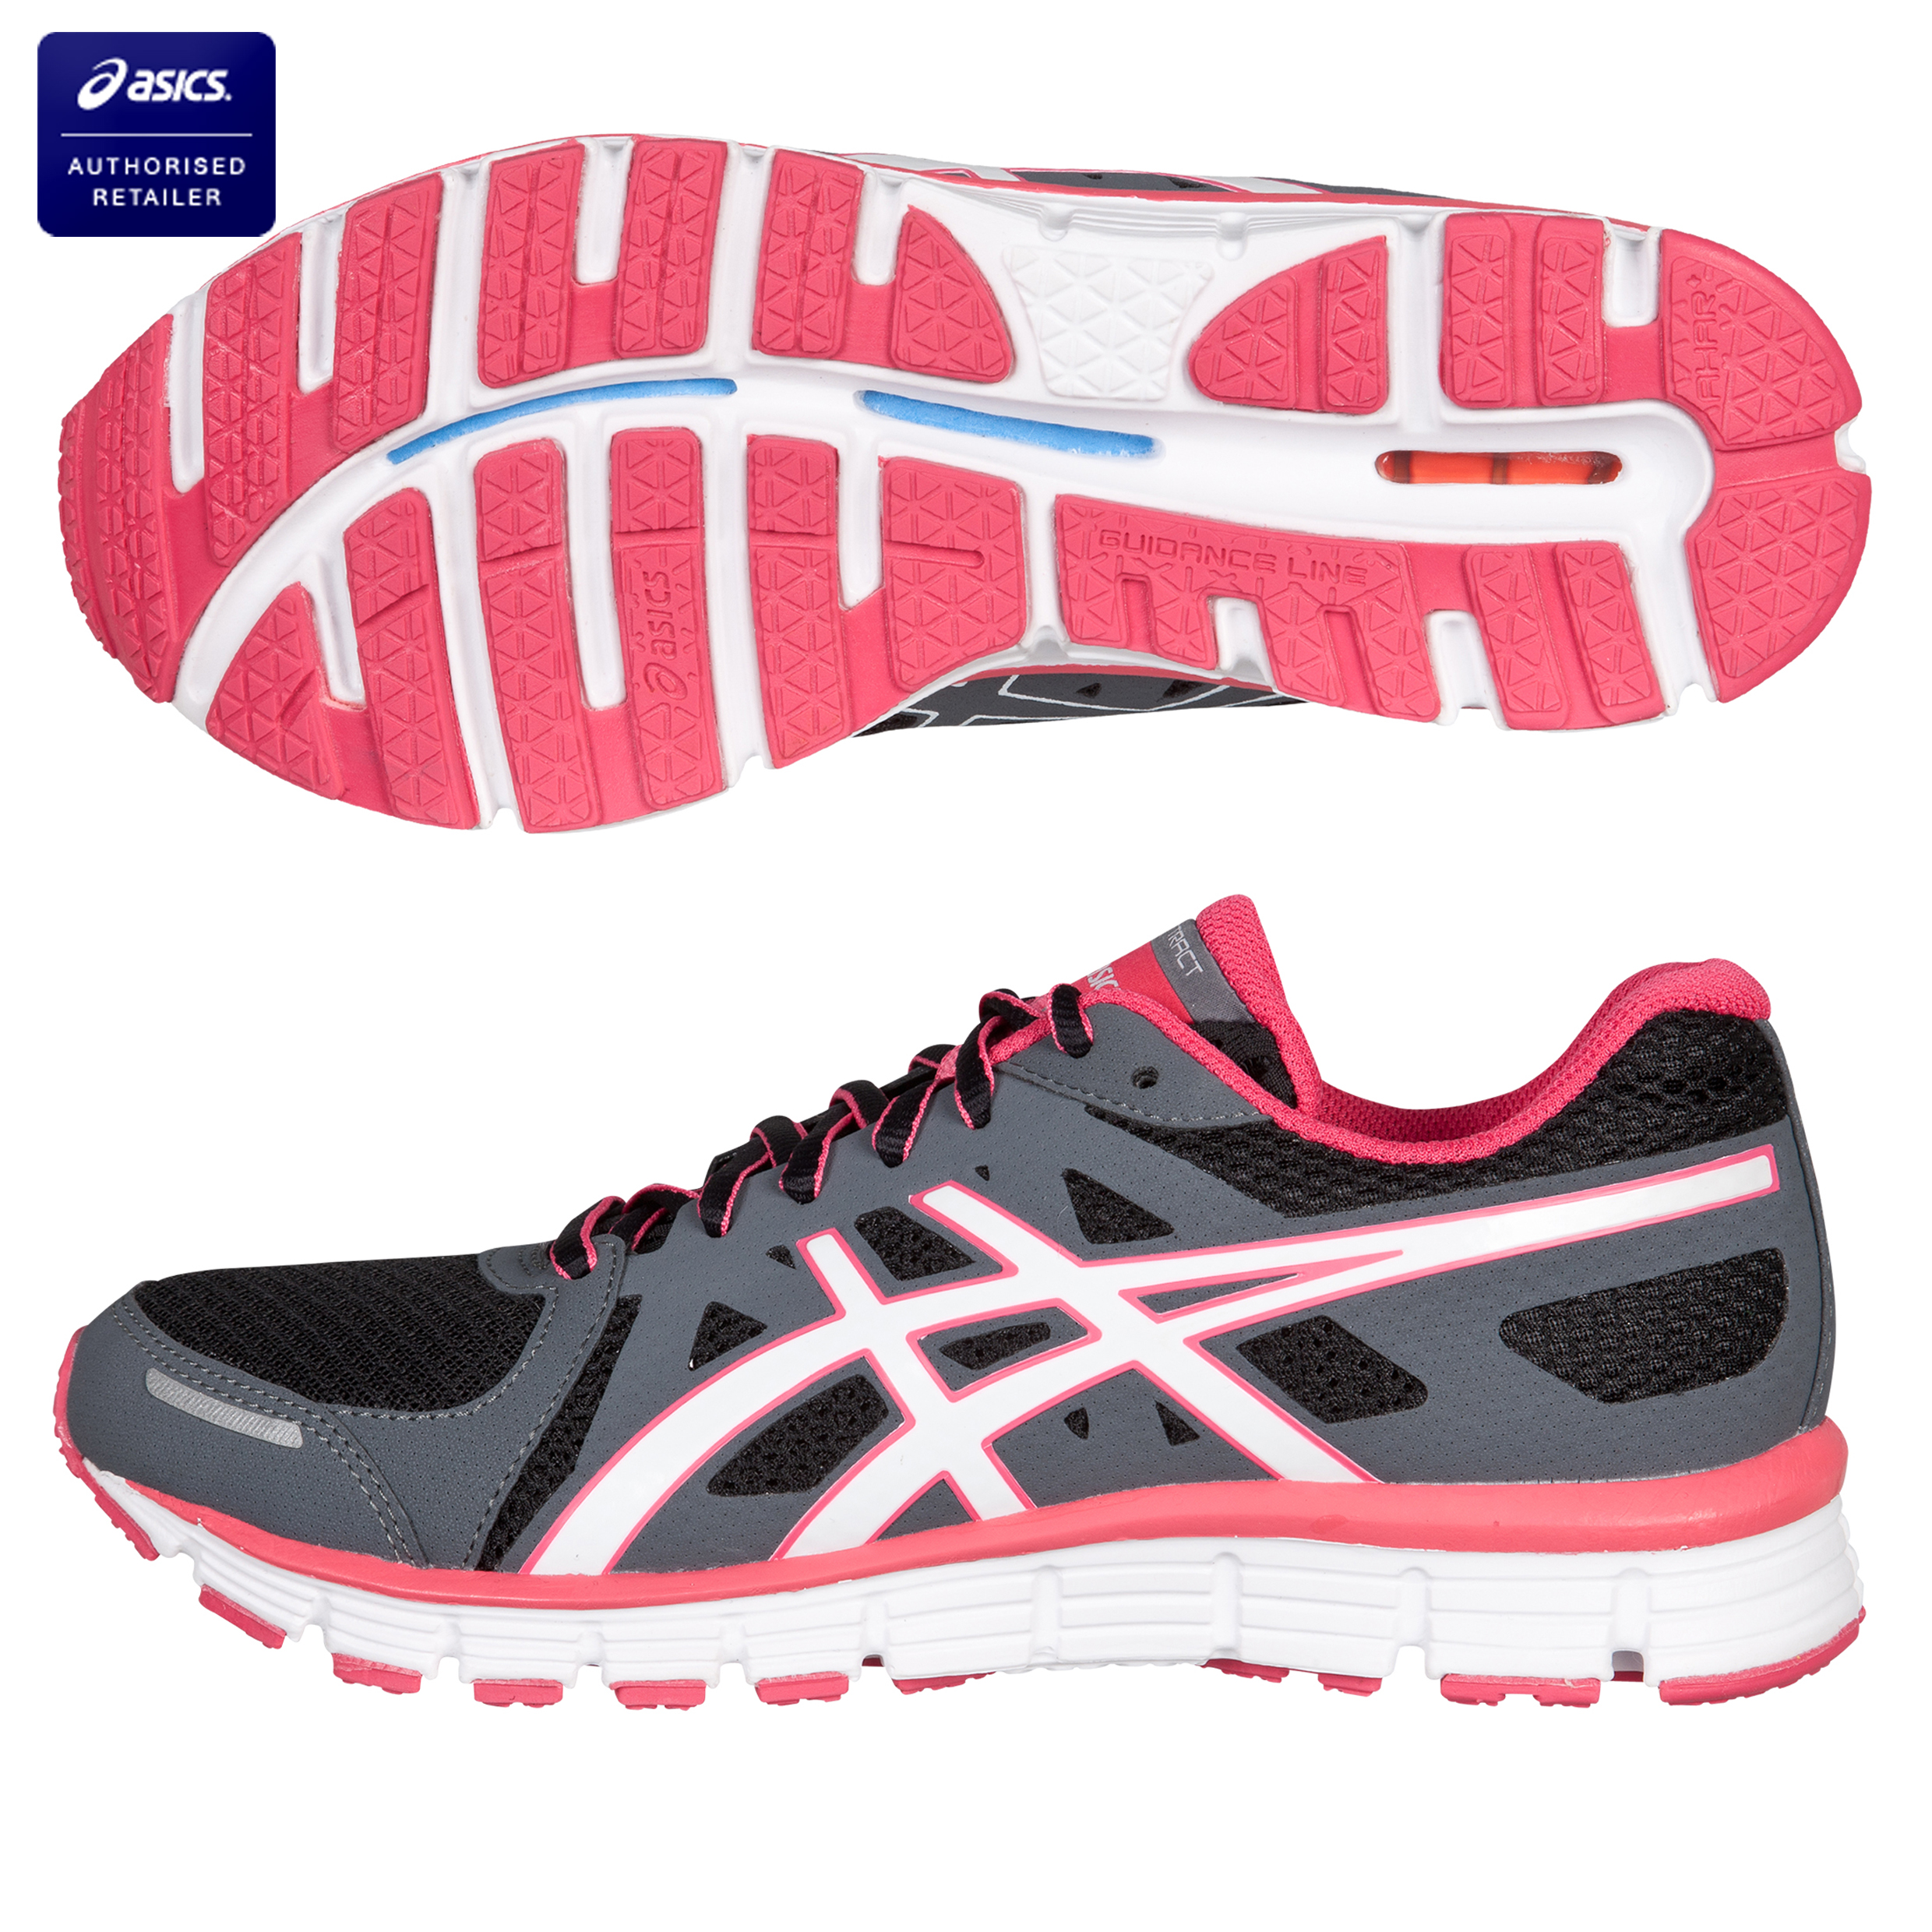 Asics Gel Attract Trainer - Black/White/Rasberry - Womens